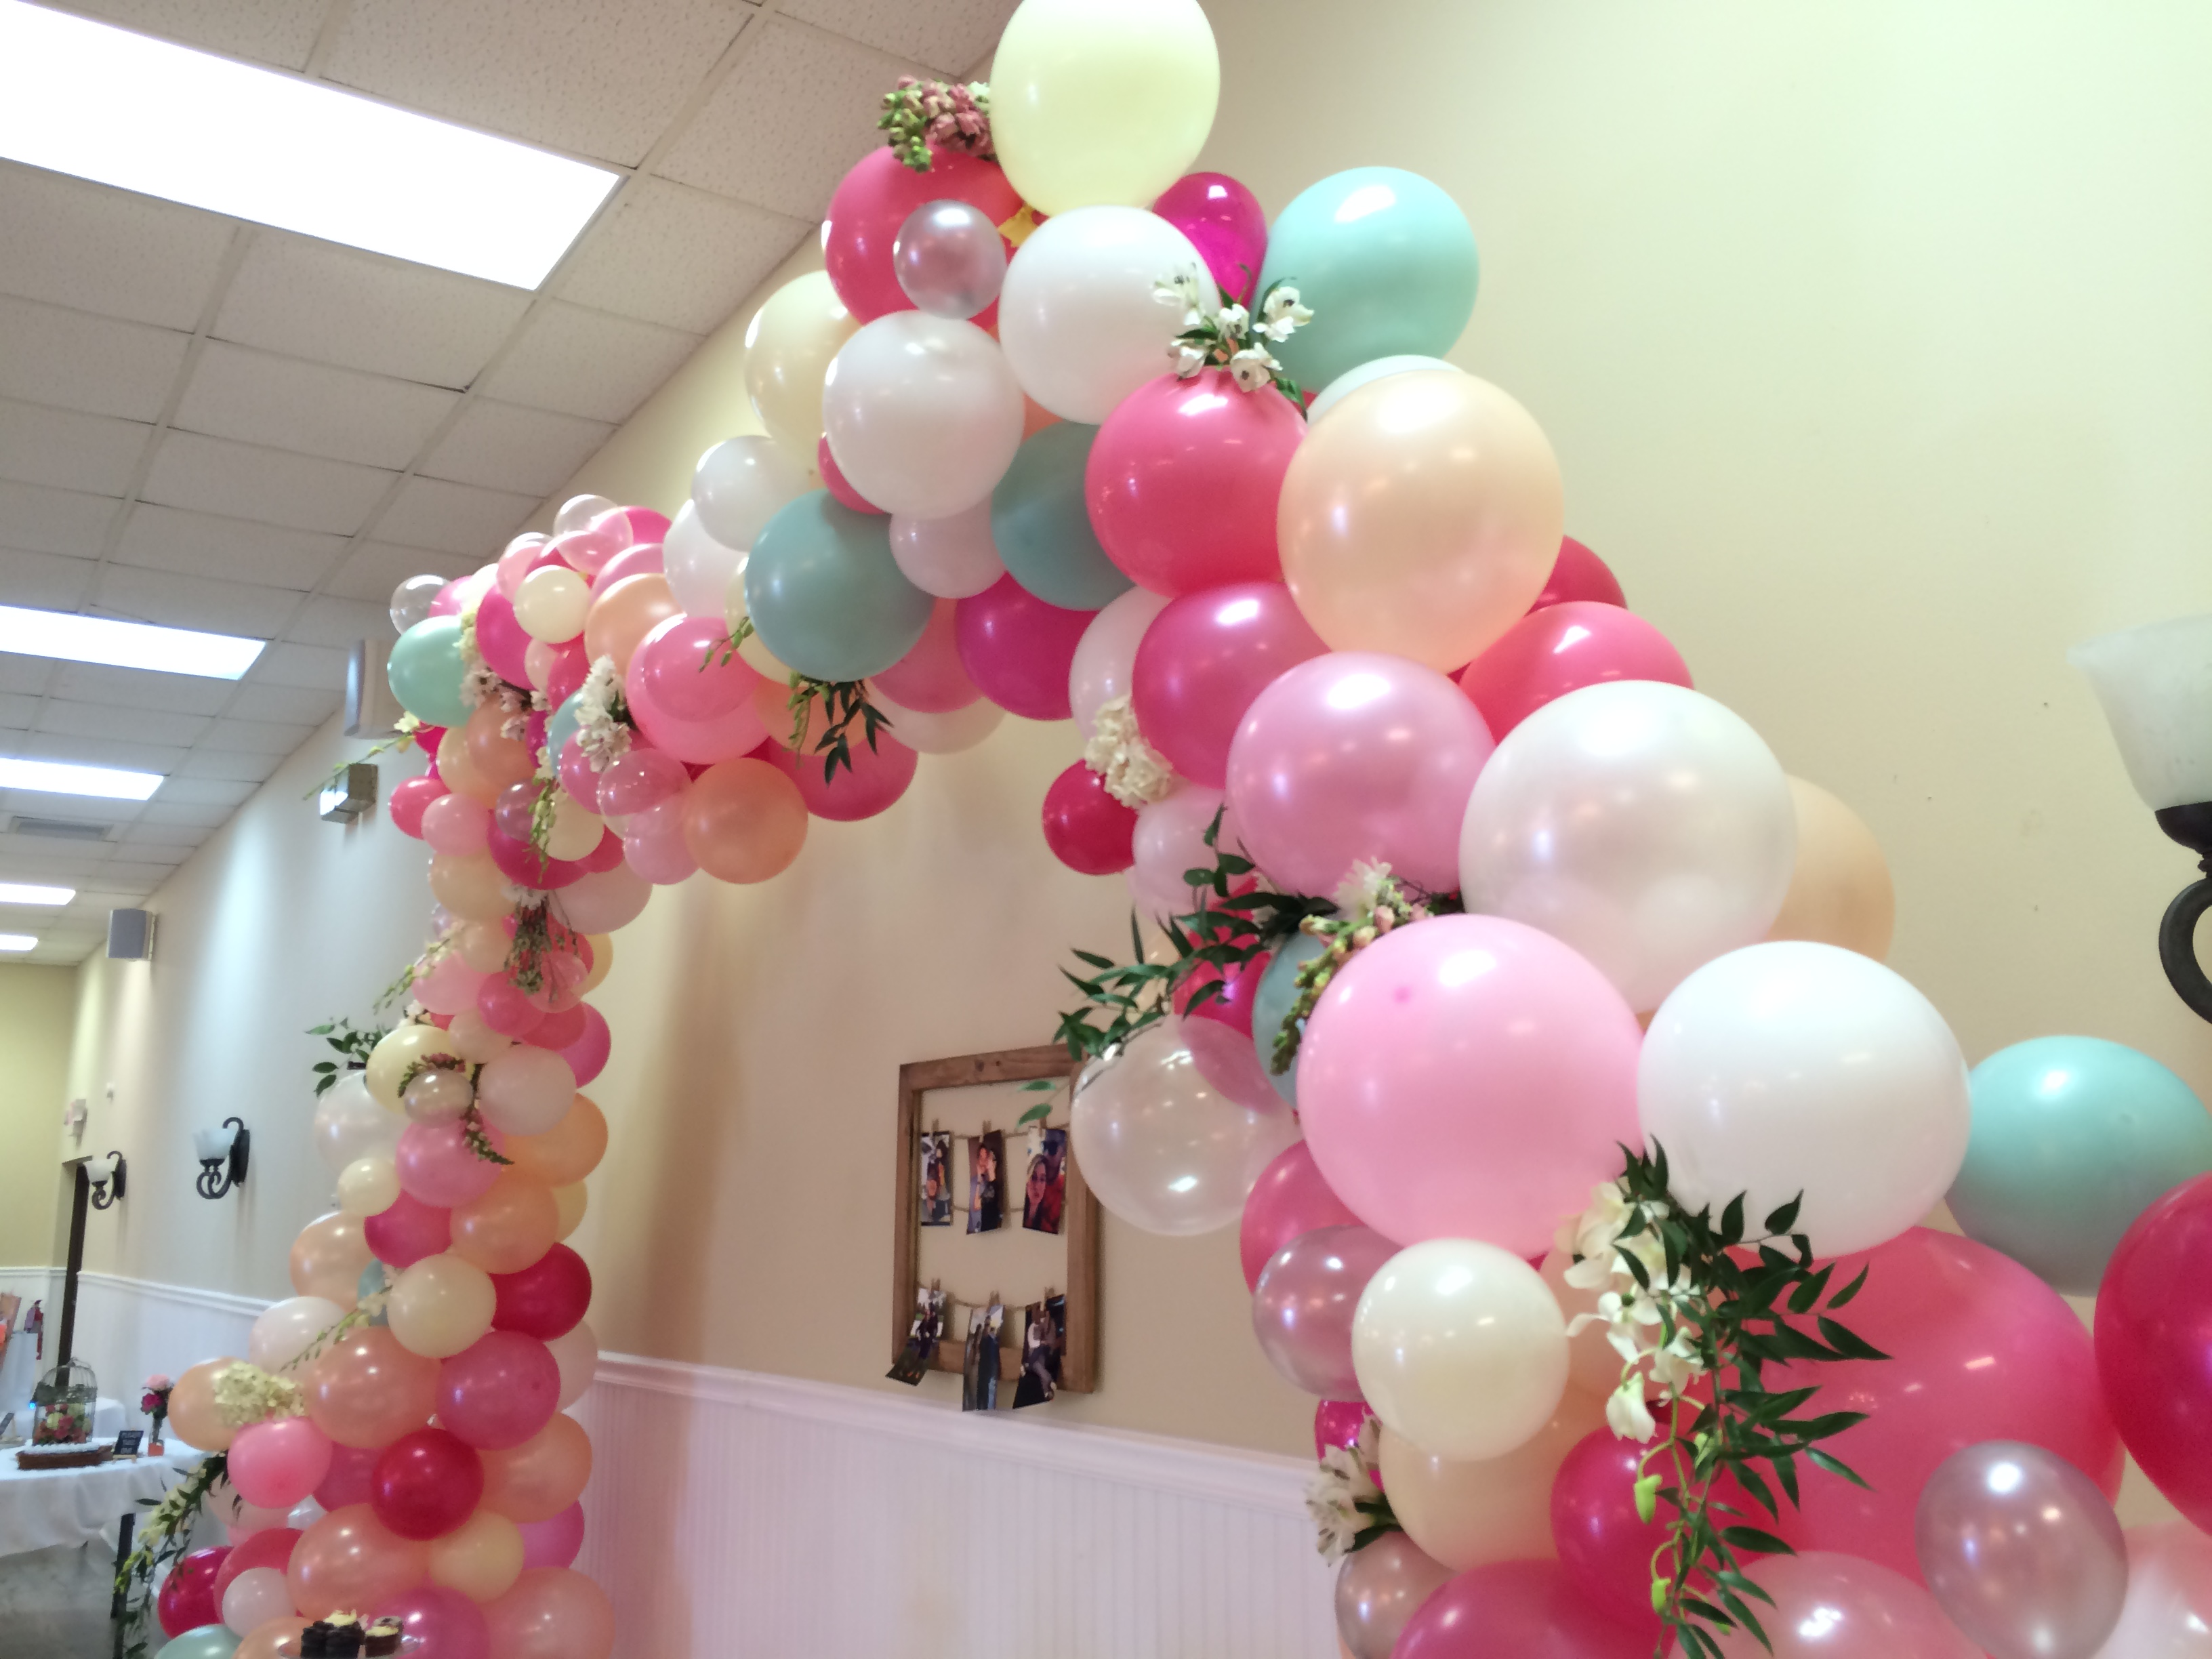 Balloon Arch with Flowers and Greens